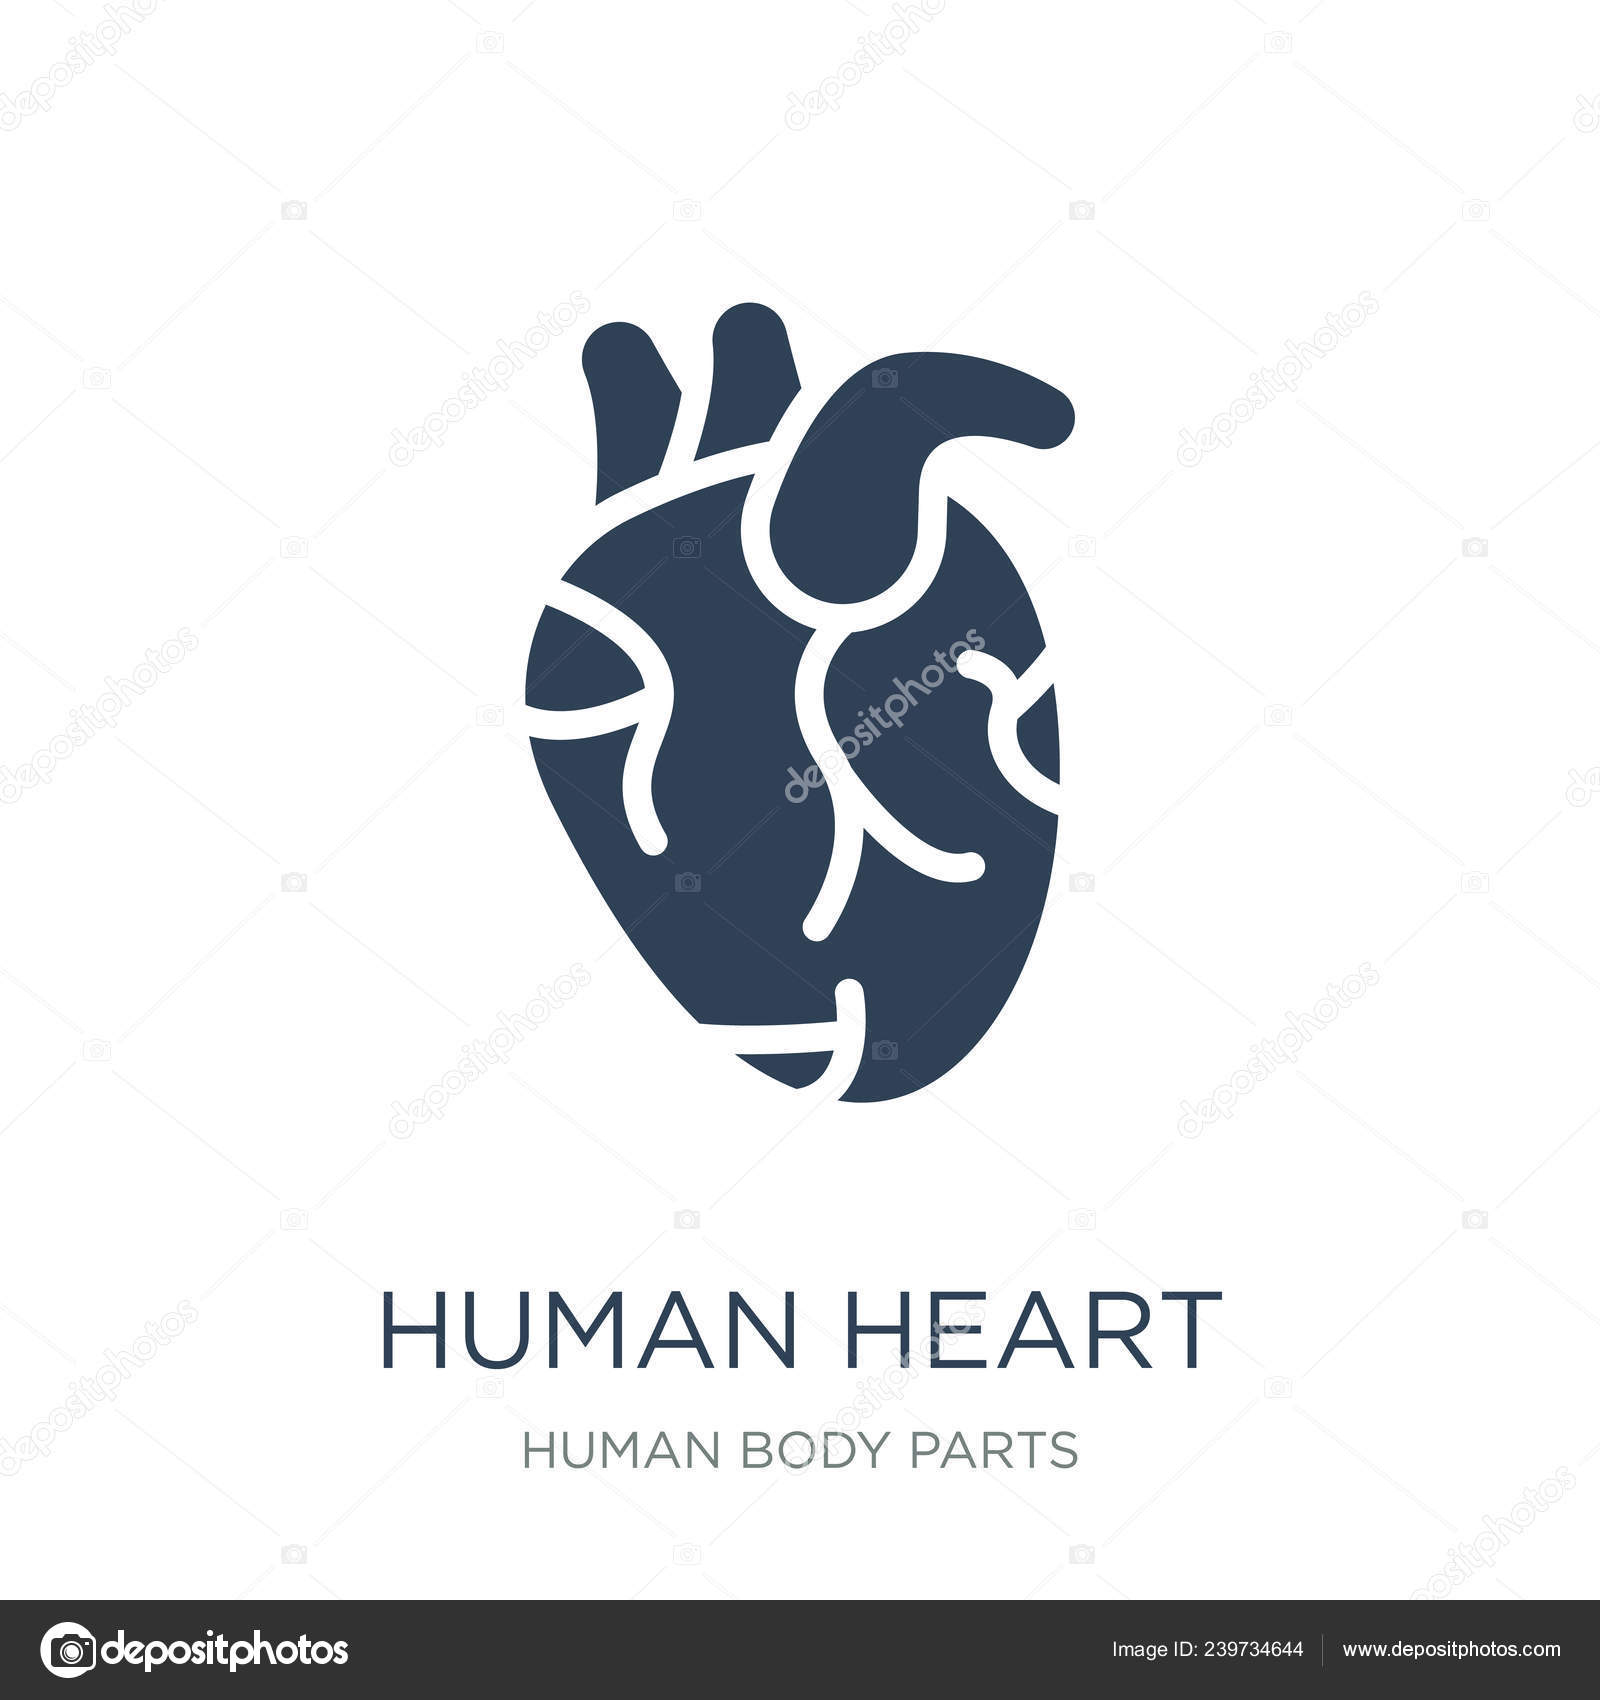 Human Heart Icon Vector White Background Human Heart Trendy